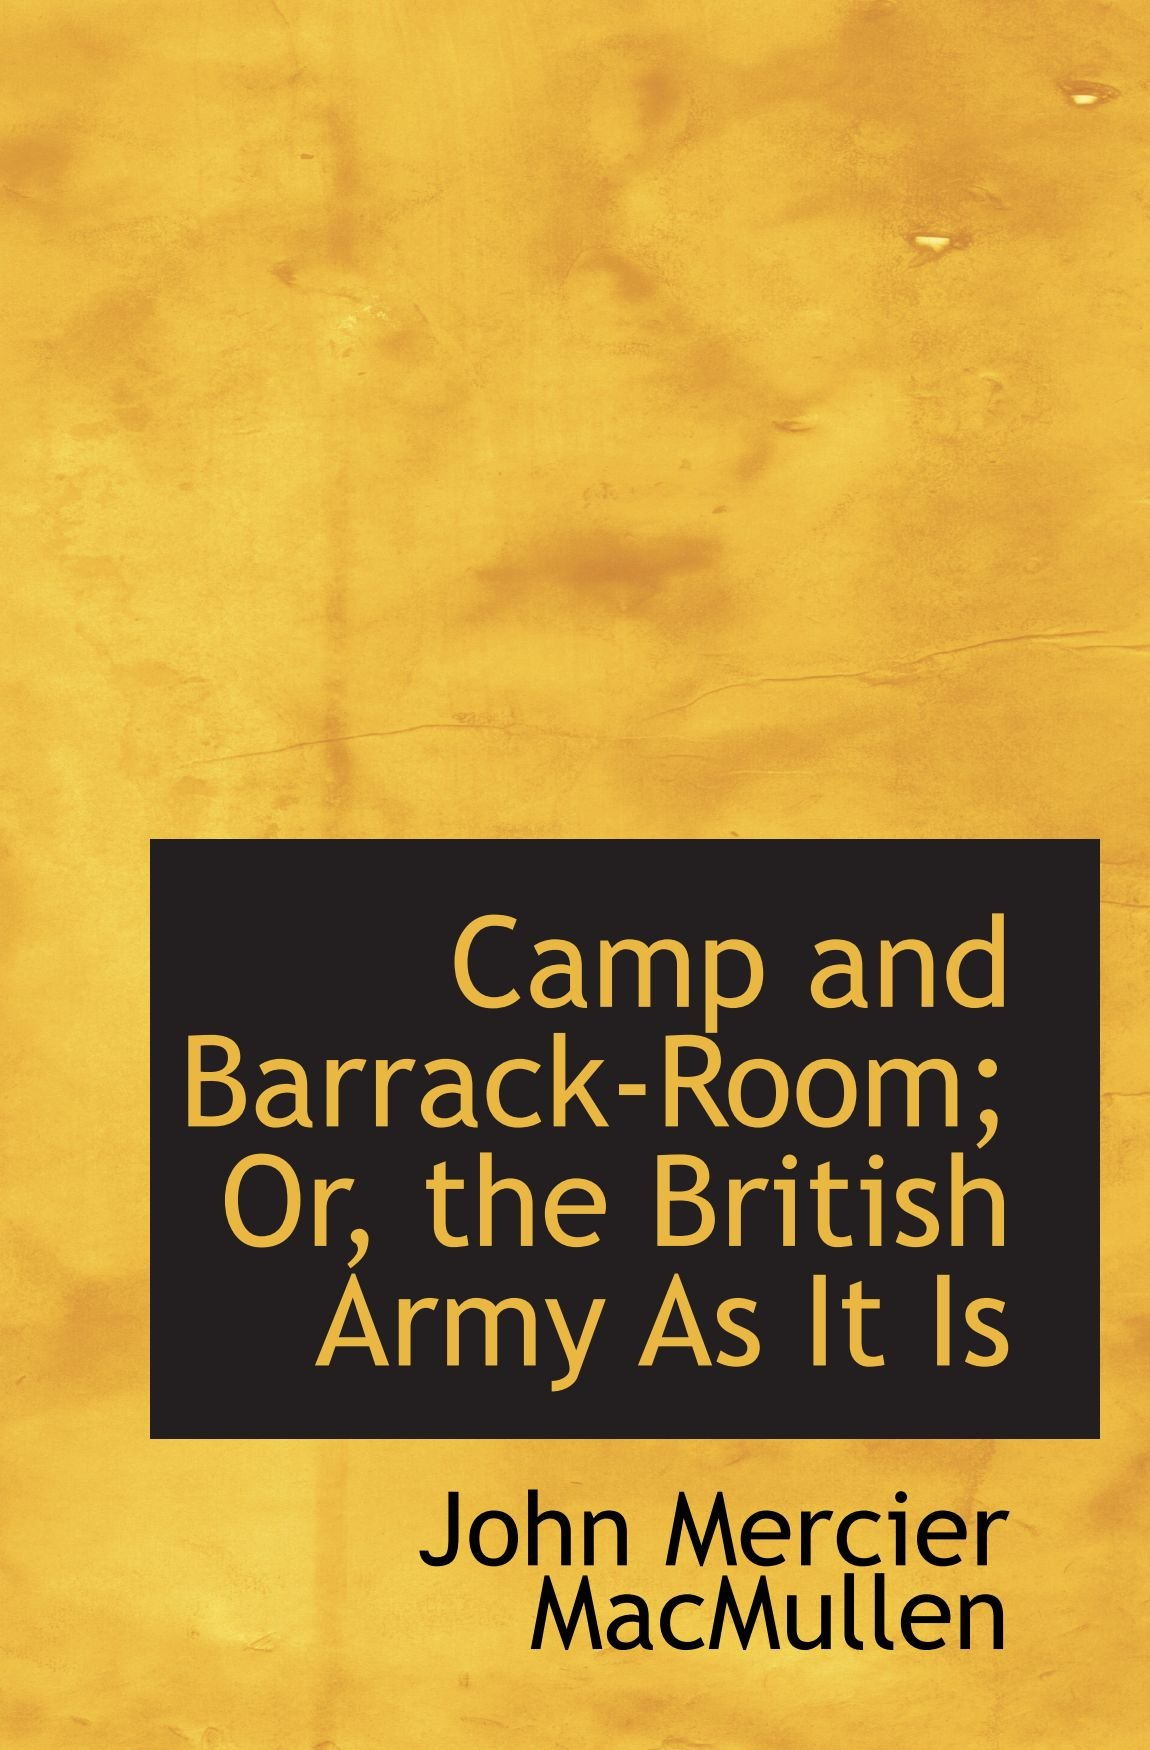 Download Camp and Barrack-Room; Or, the British Army As It Is PDF